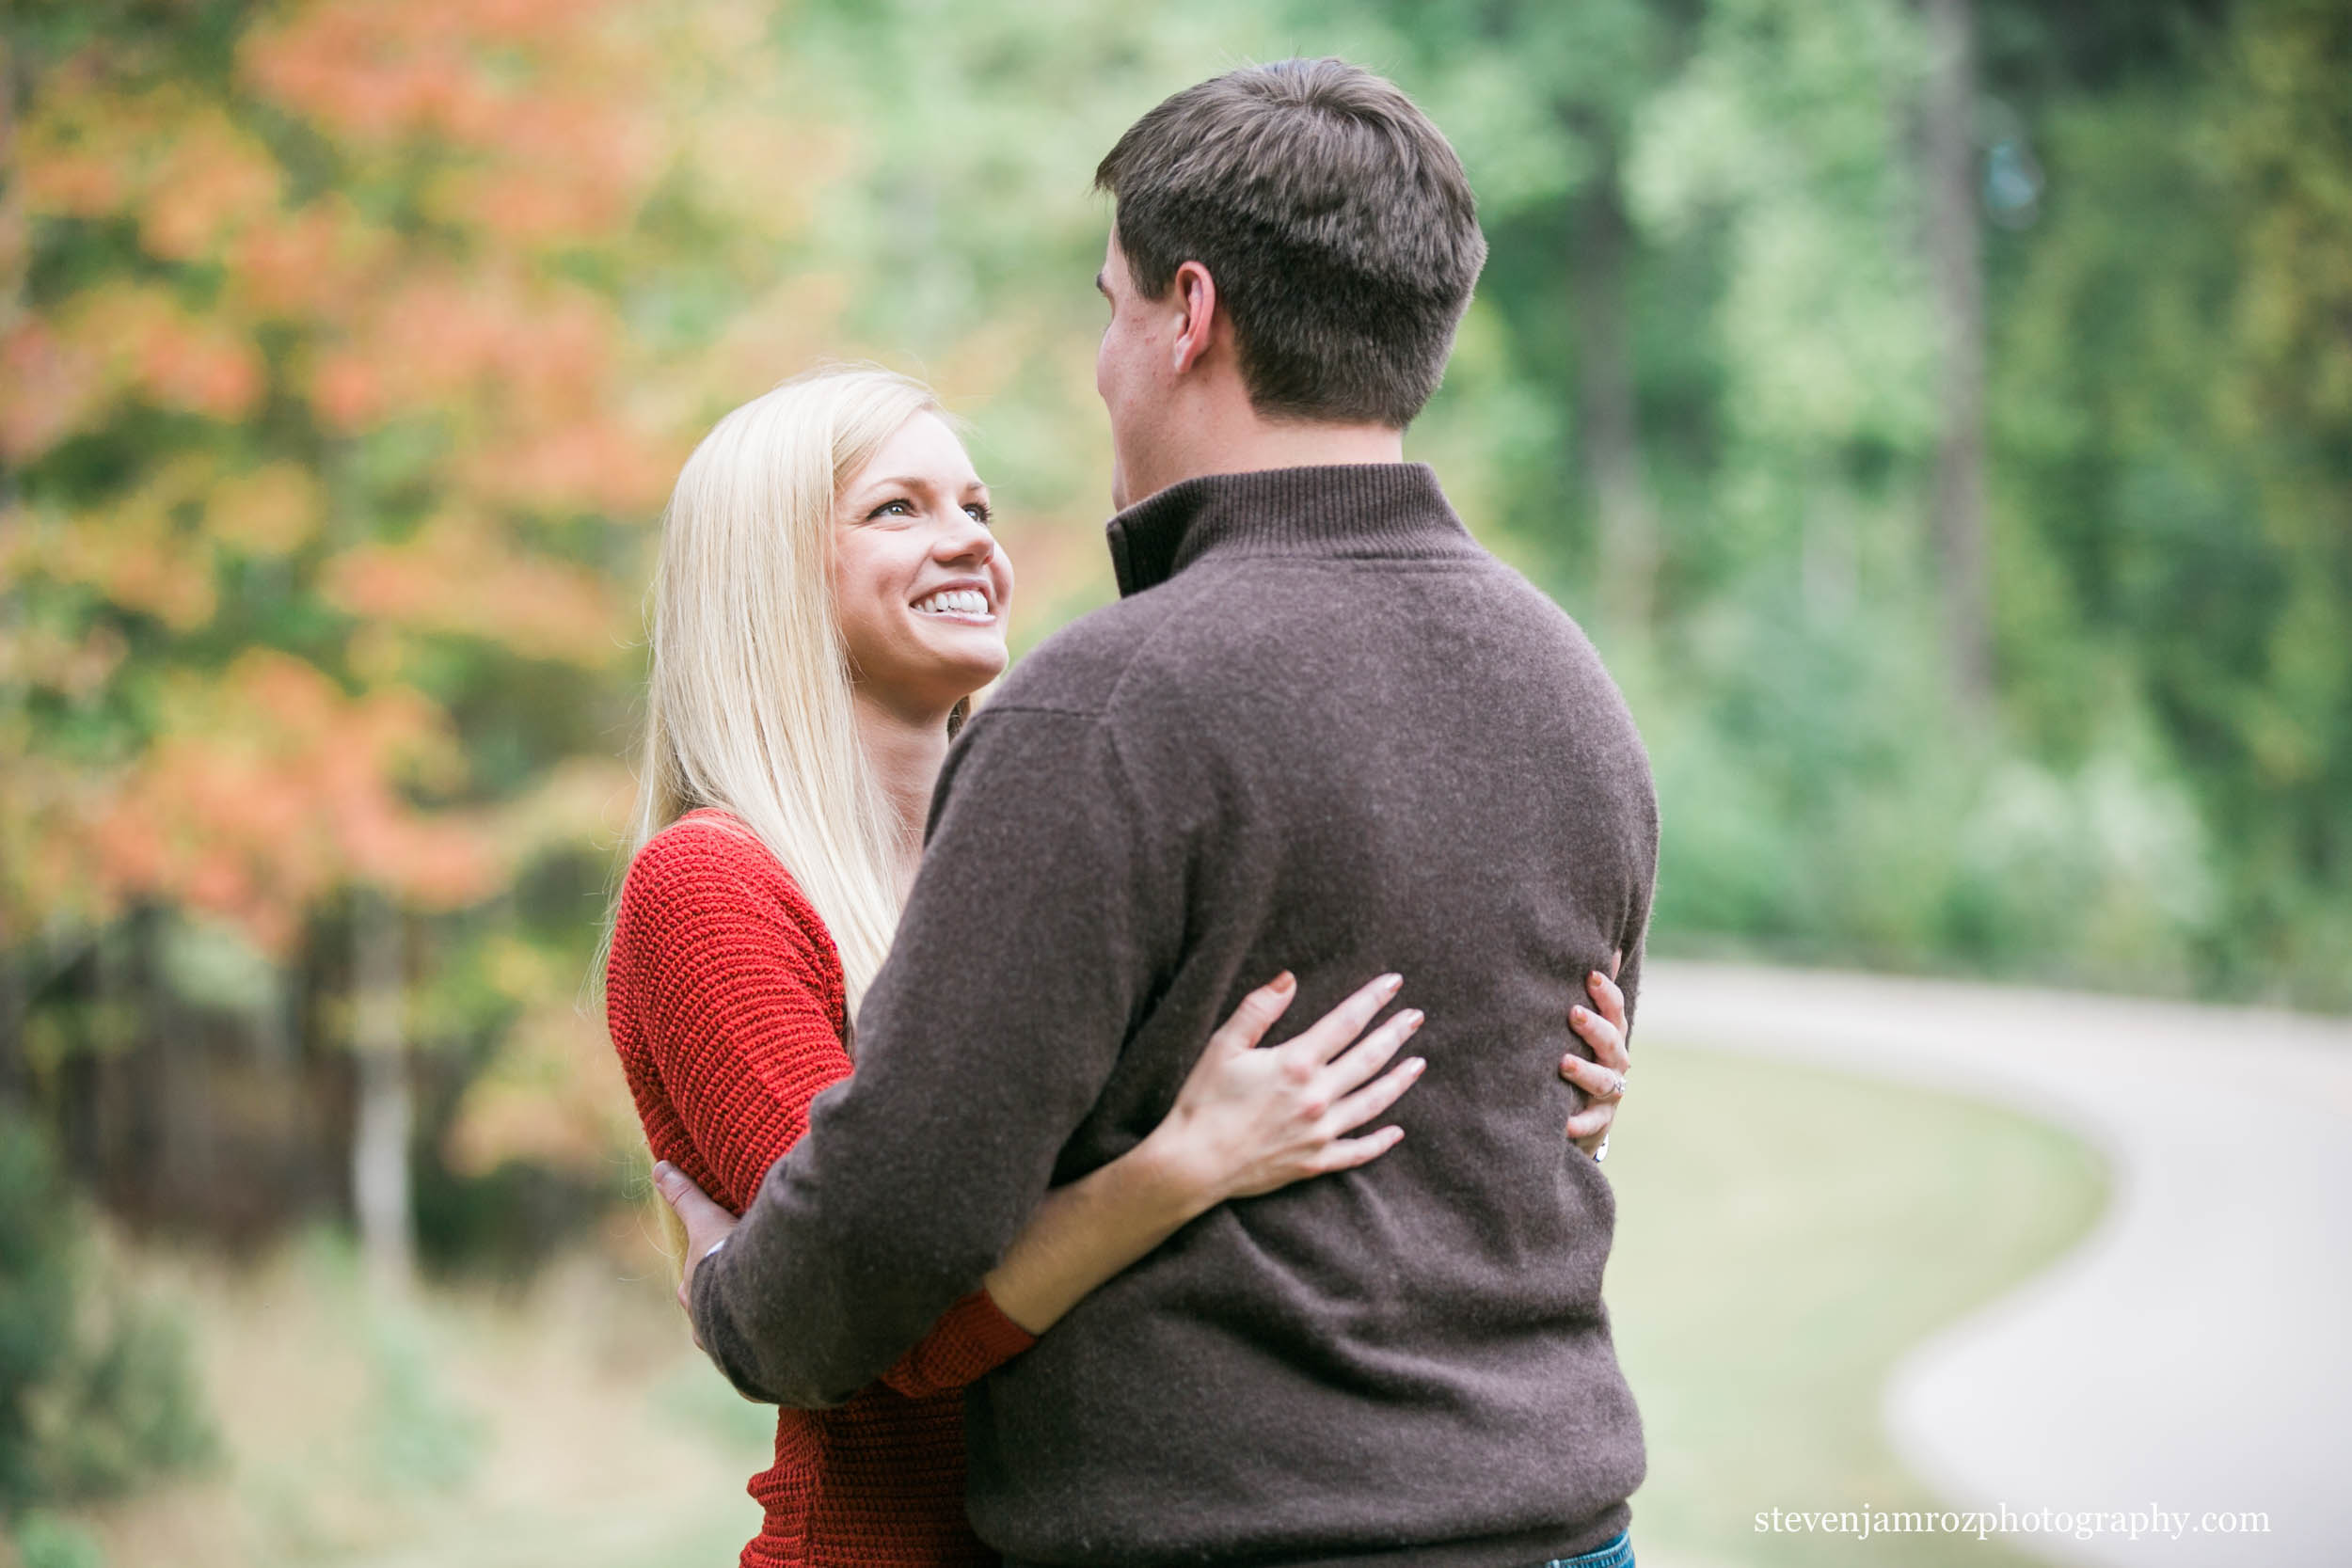 umstead-park-engagement-session-spring-raleigh-nc.jpg